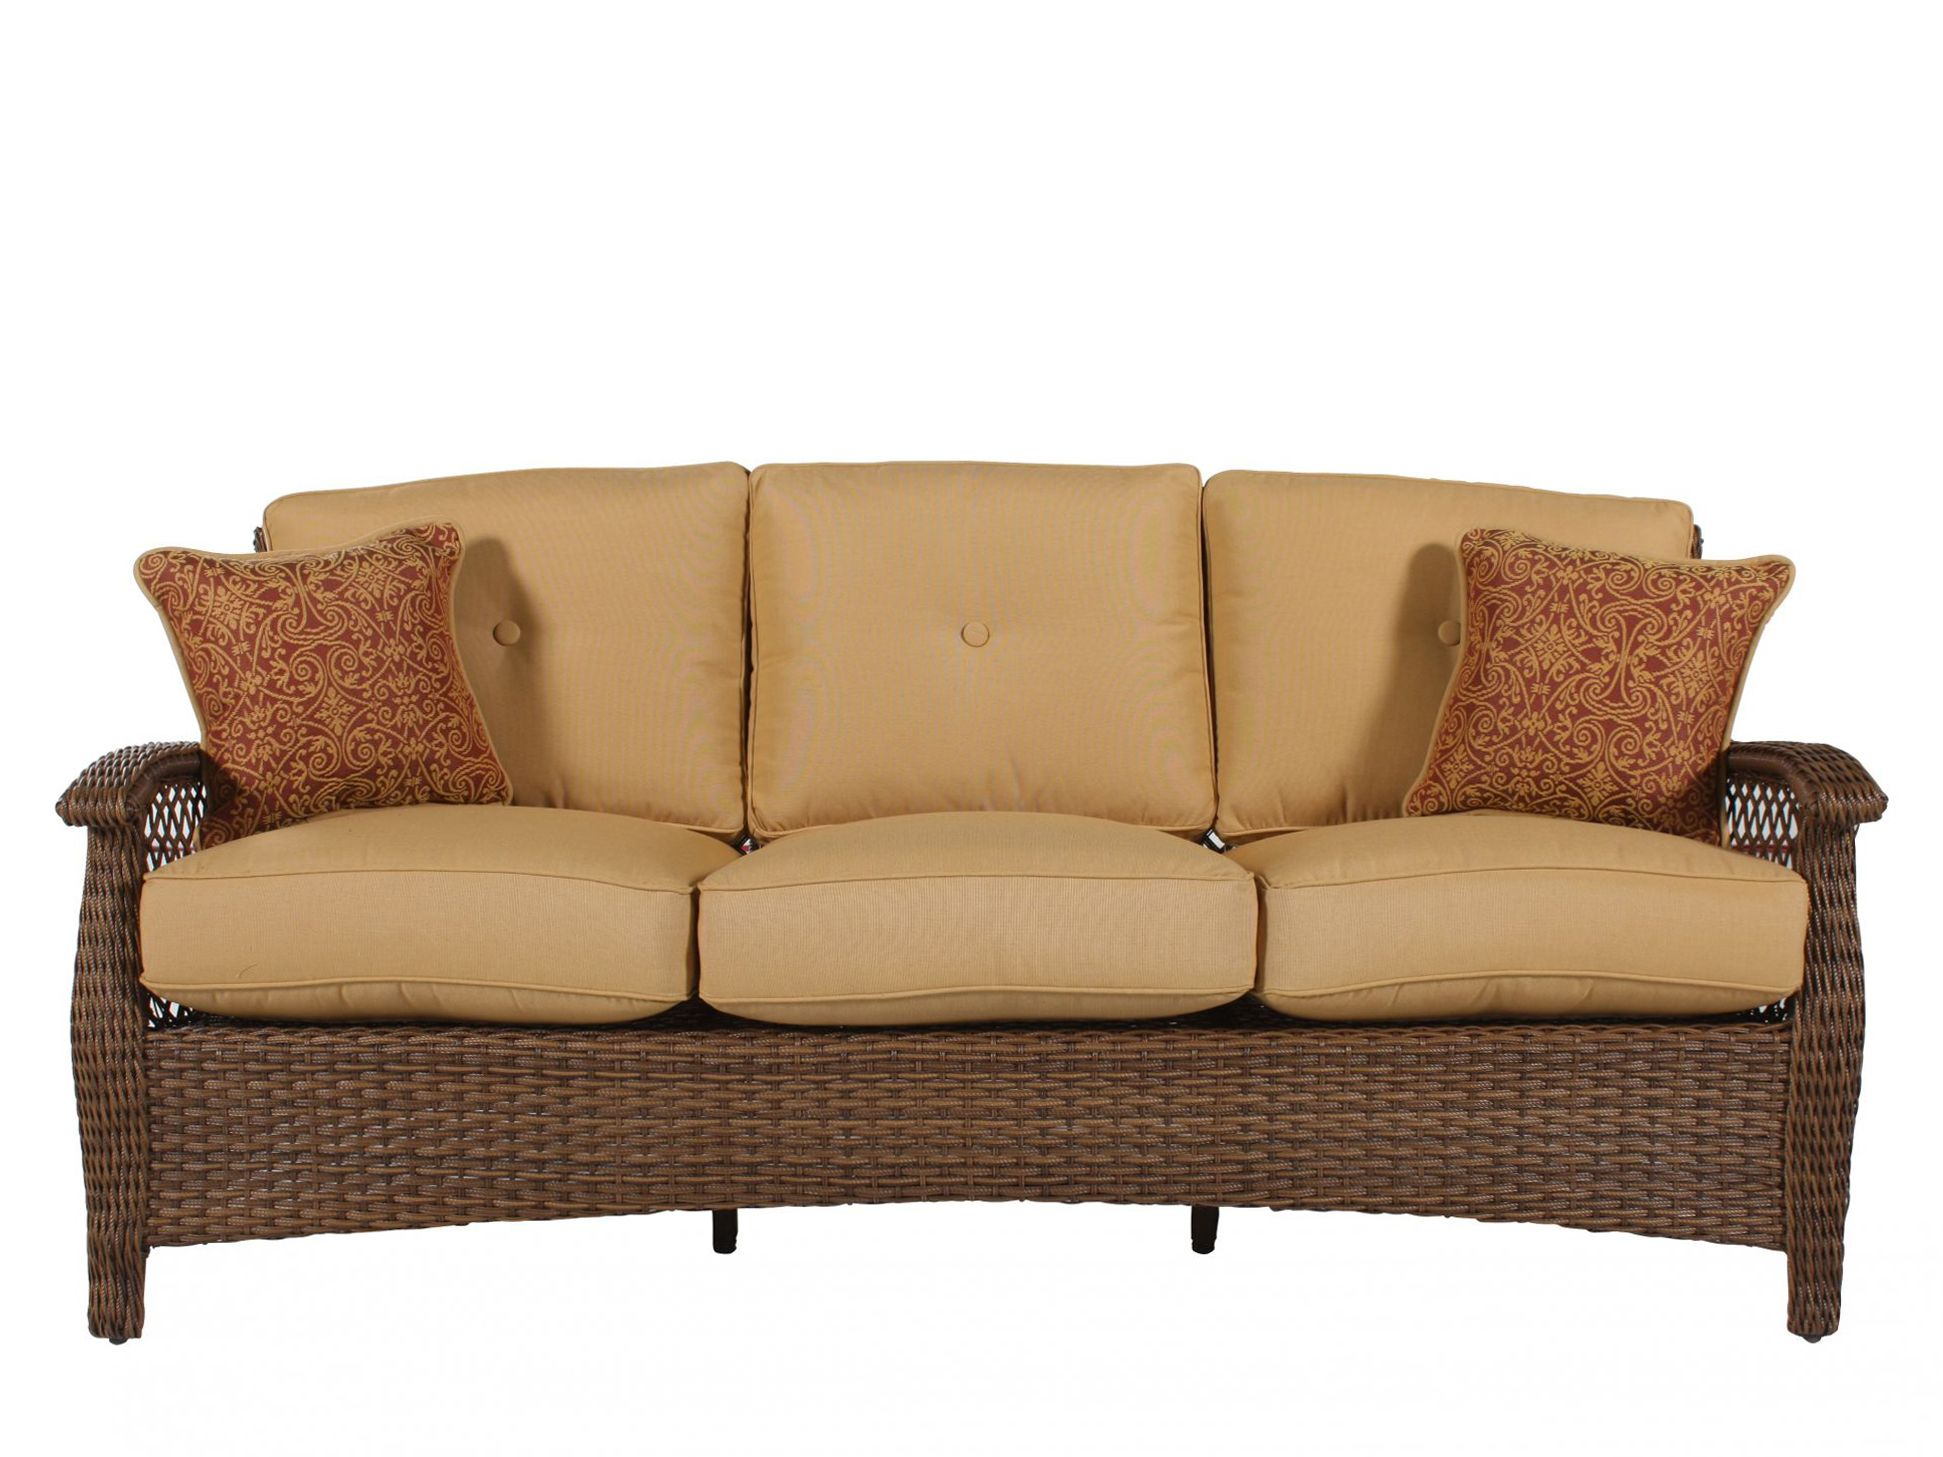 Agio Veranda Patio Sofa